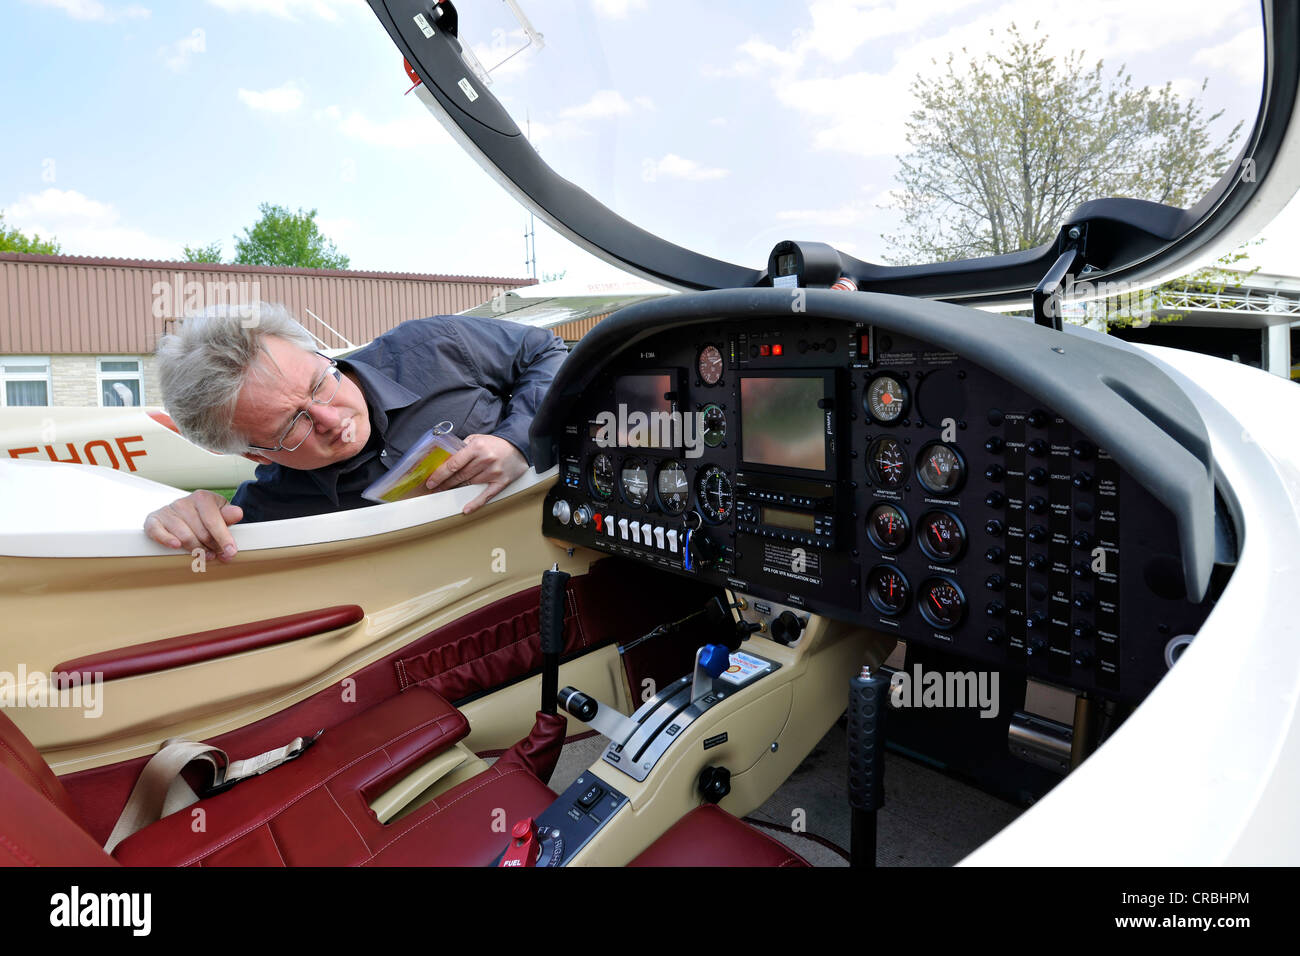 Pilot inspecting the glass cockpit of the light aircraft D-ESOA Aquila A210 AT01 with VOR Very high frequency omnidirectional - Stock Image